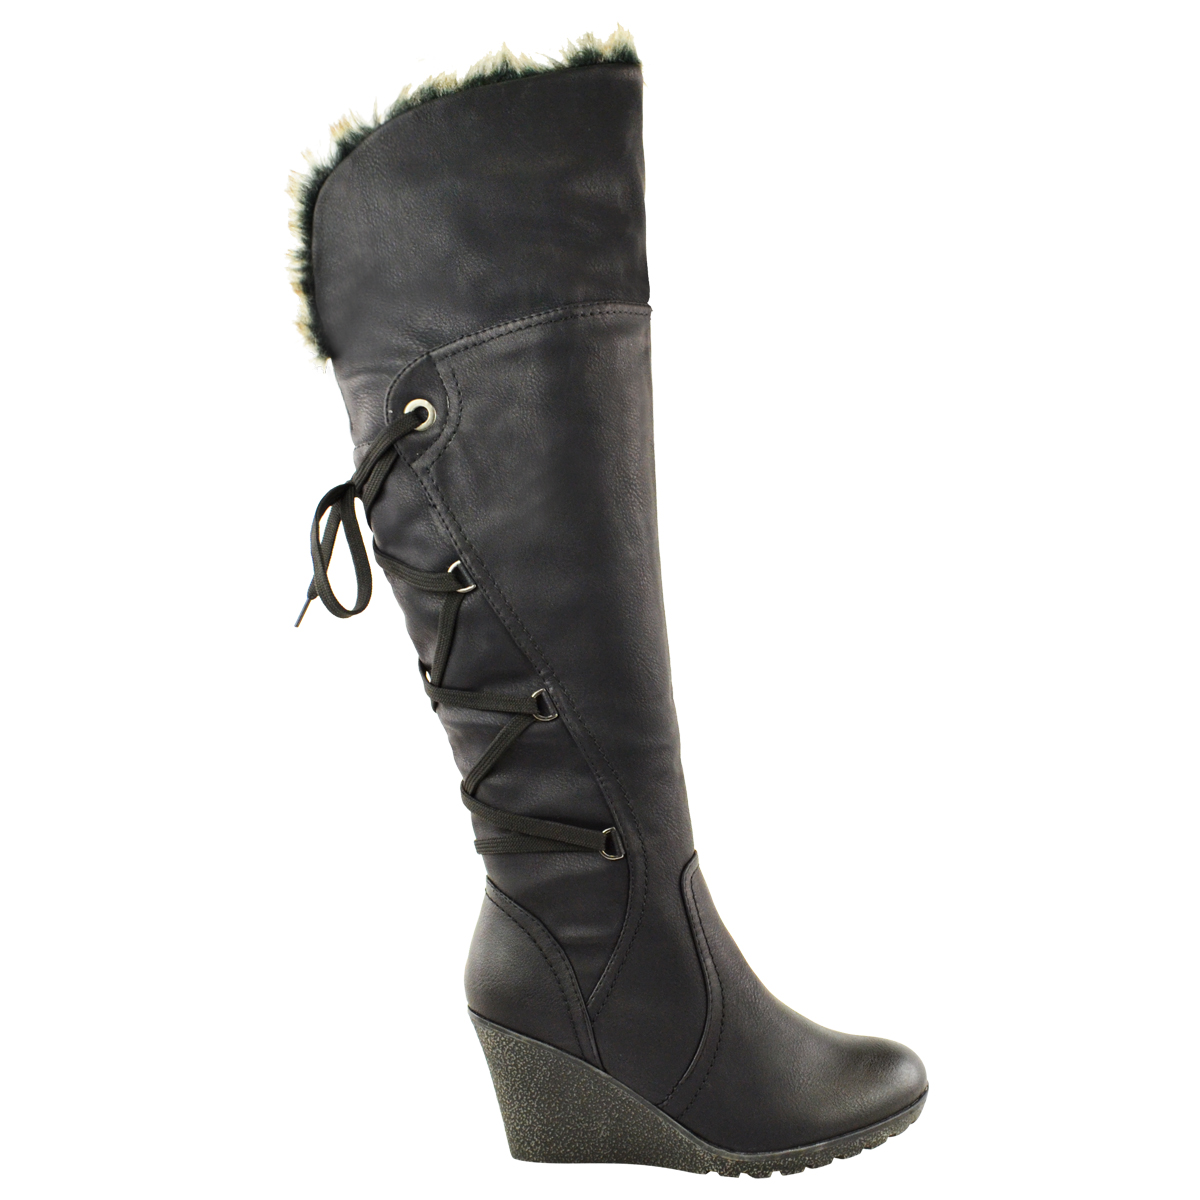 High Heel Winter Boots Fashion Platform Shoes